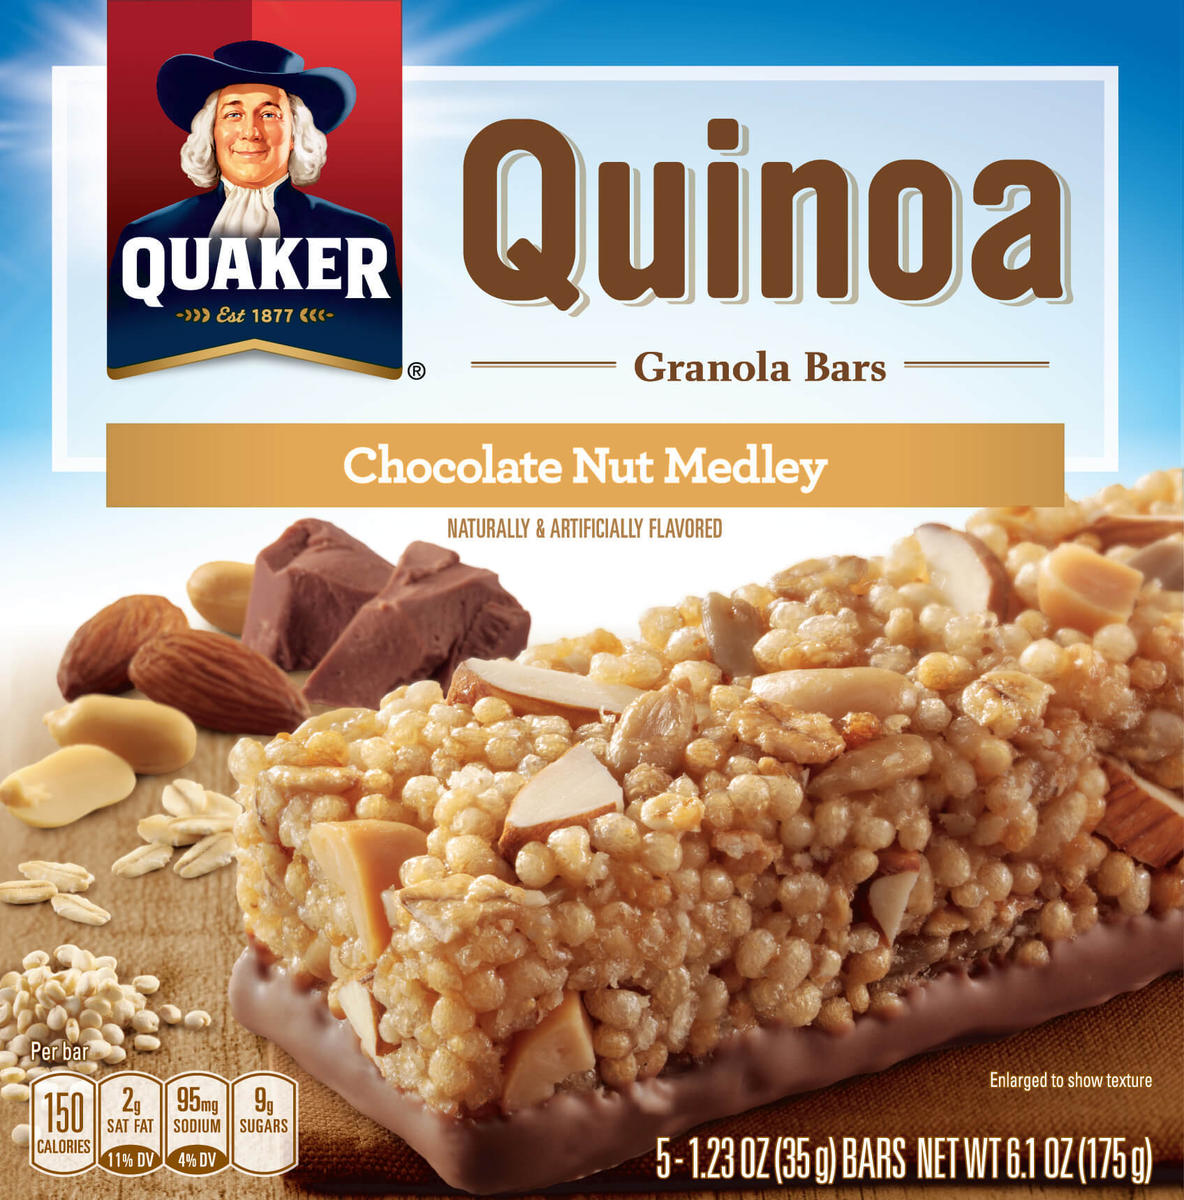 Quaker Oats is recalling quinoa granola bars because of possible listeria contamination.